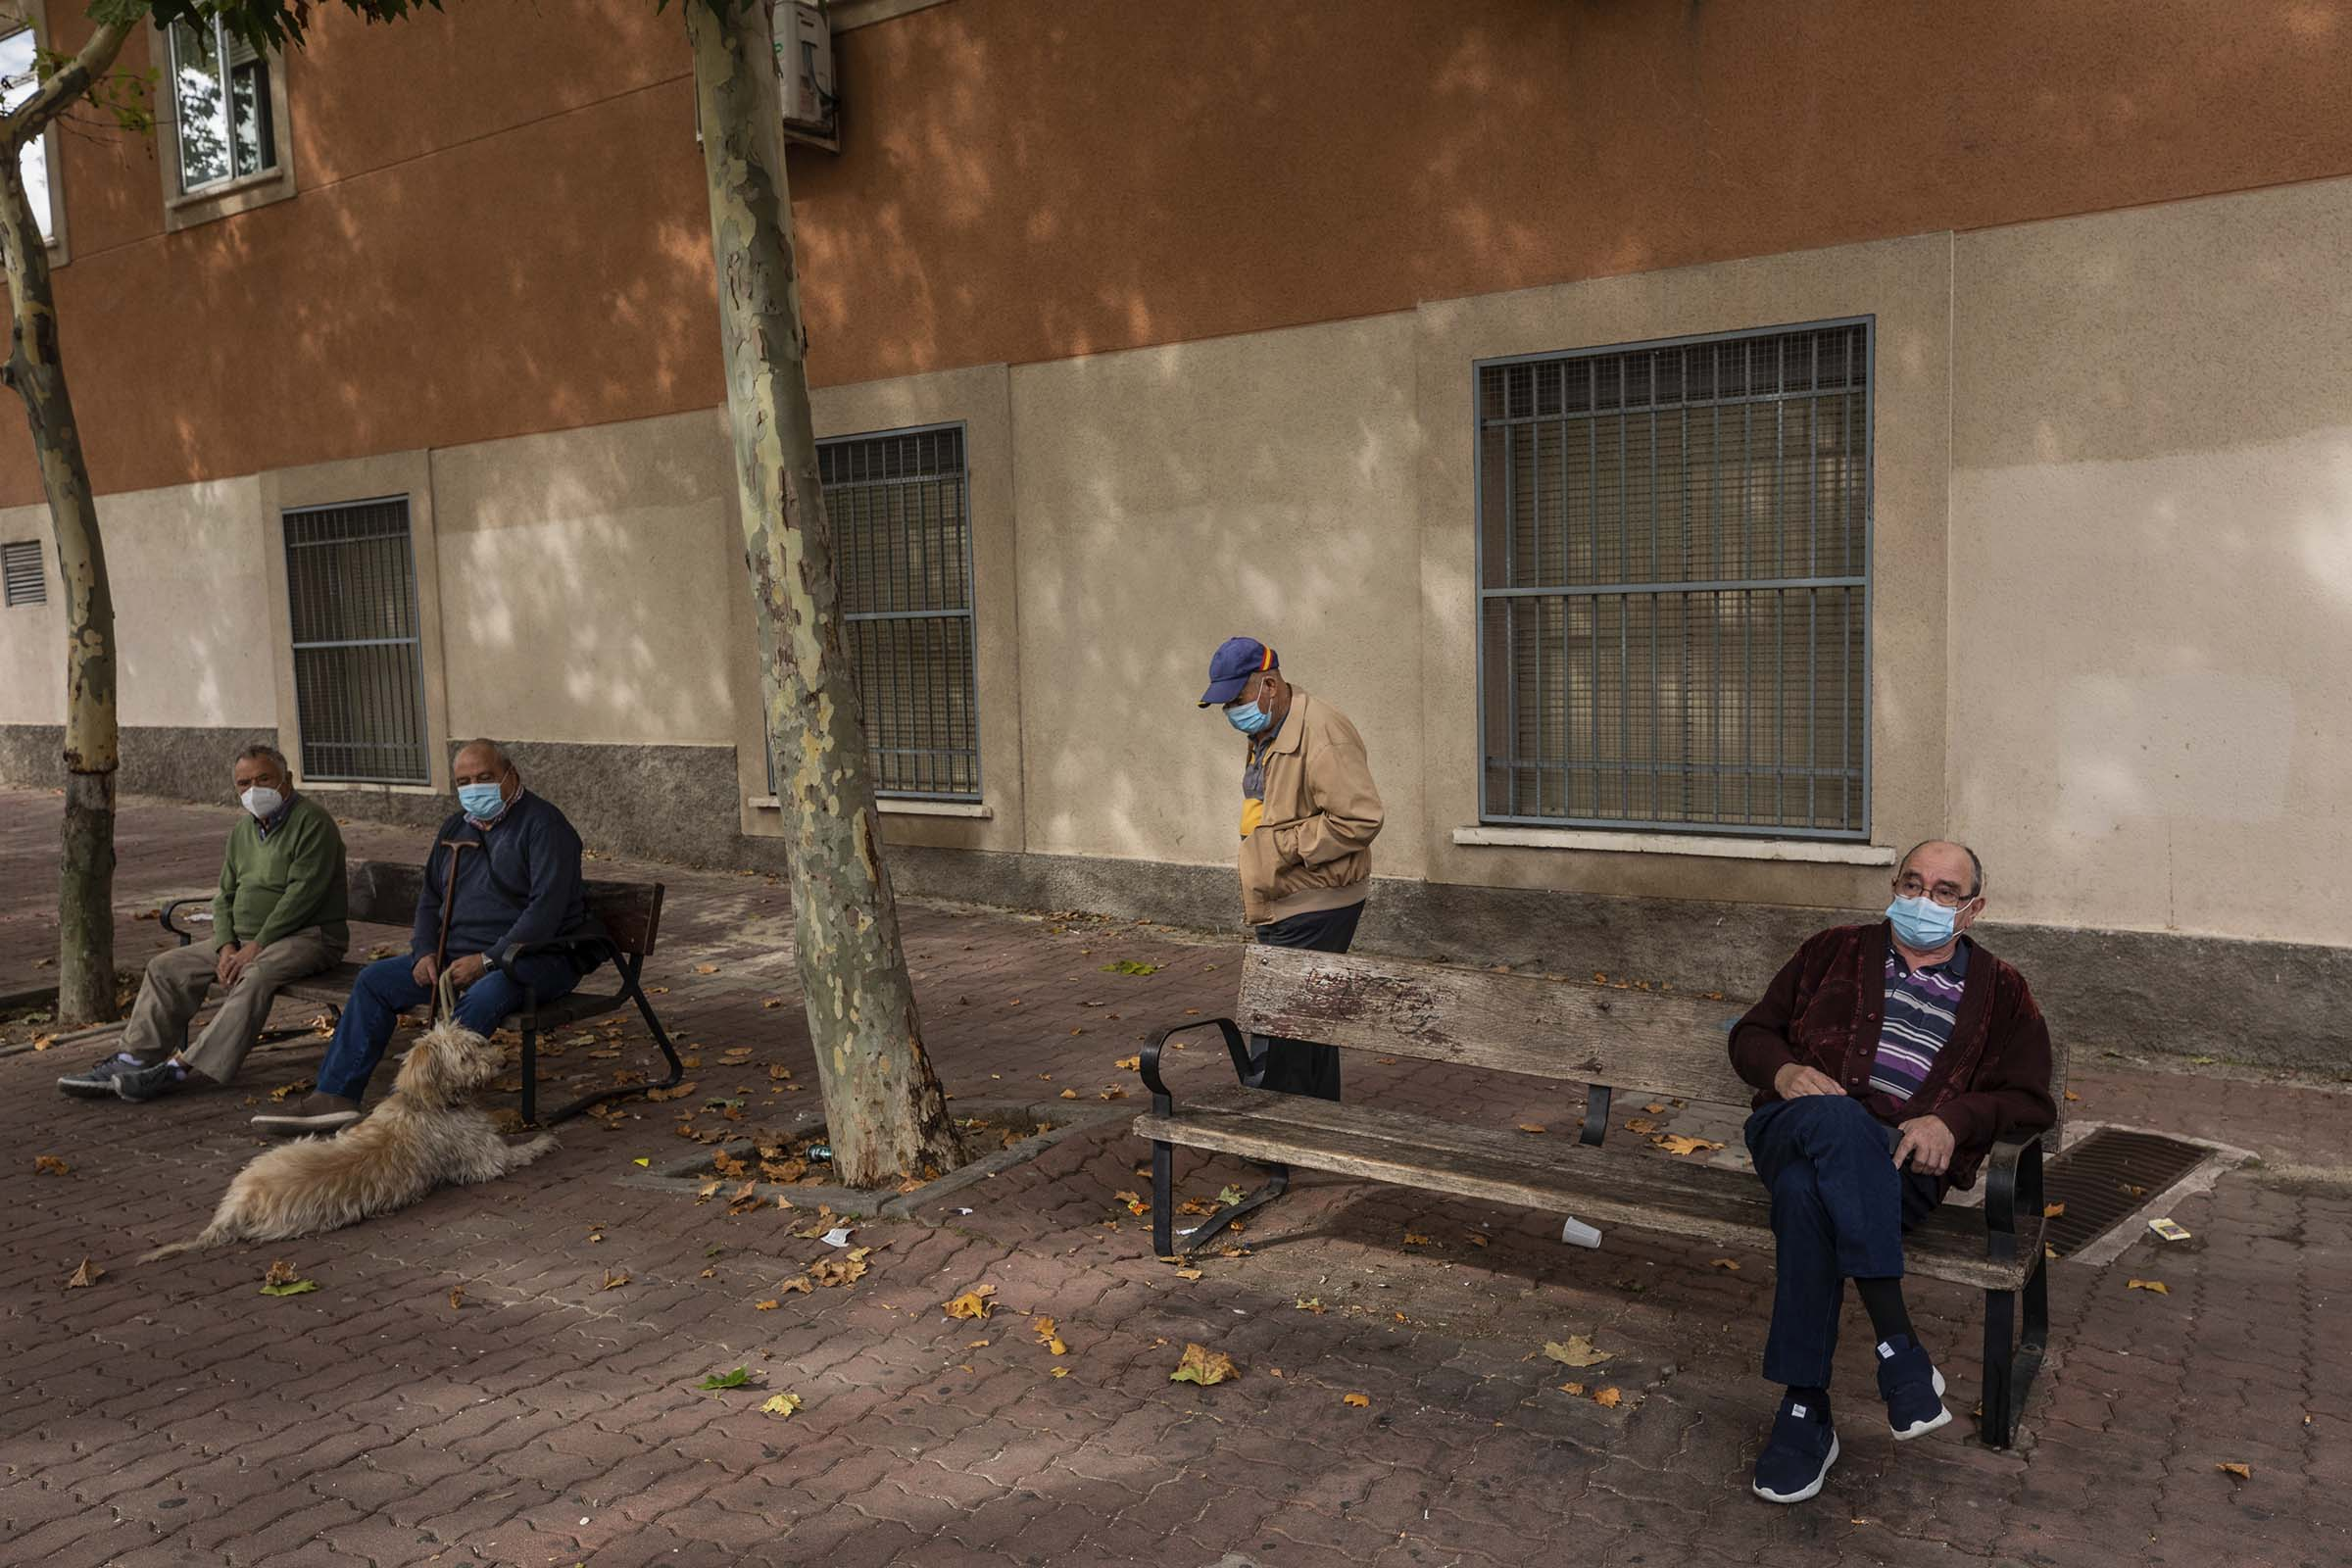 Elders wearing face masks to prevent the spread of the coronavirus sit on a park in Madrid, Spain, on Sept. 23, 2020.